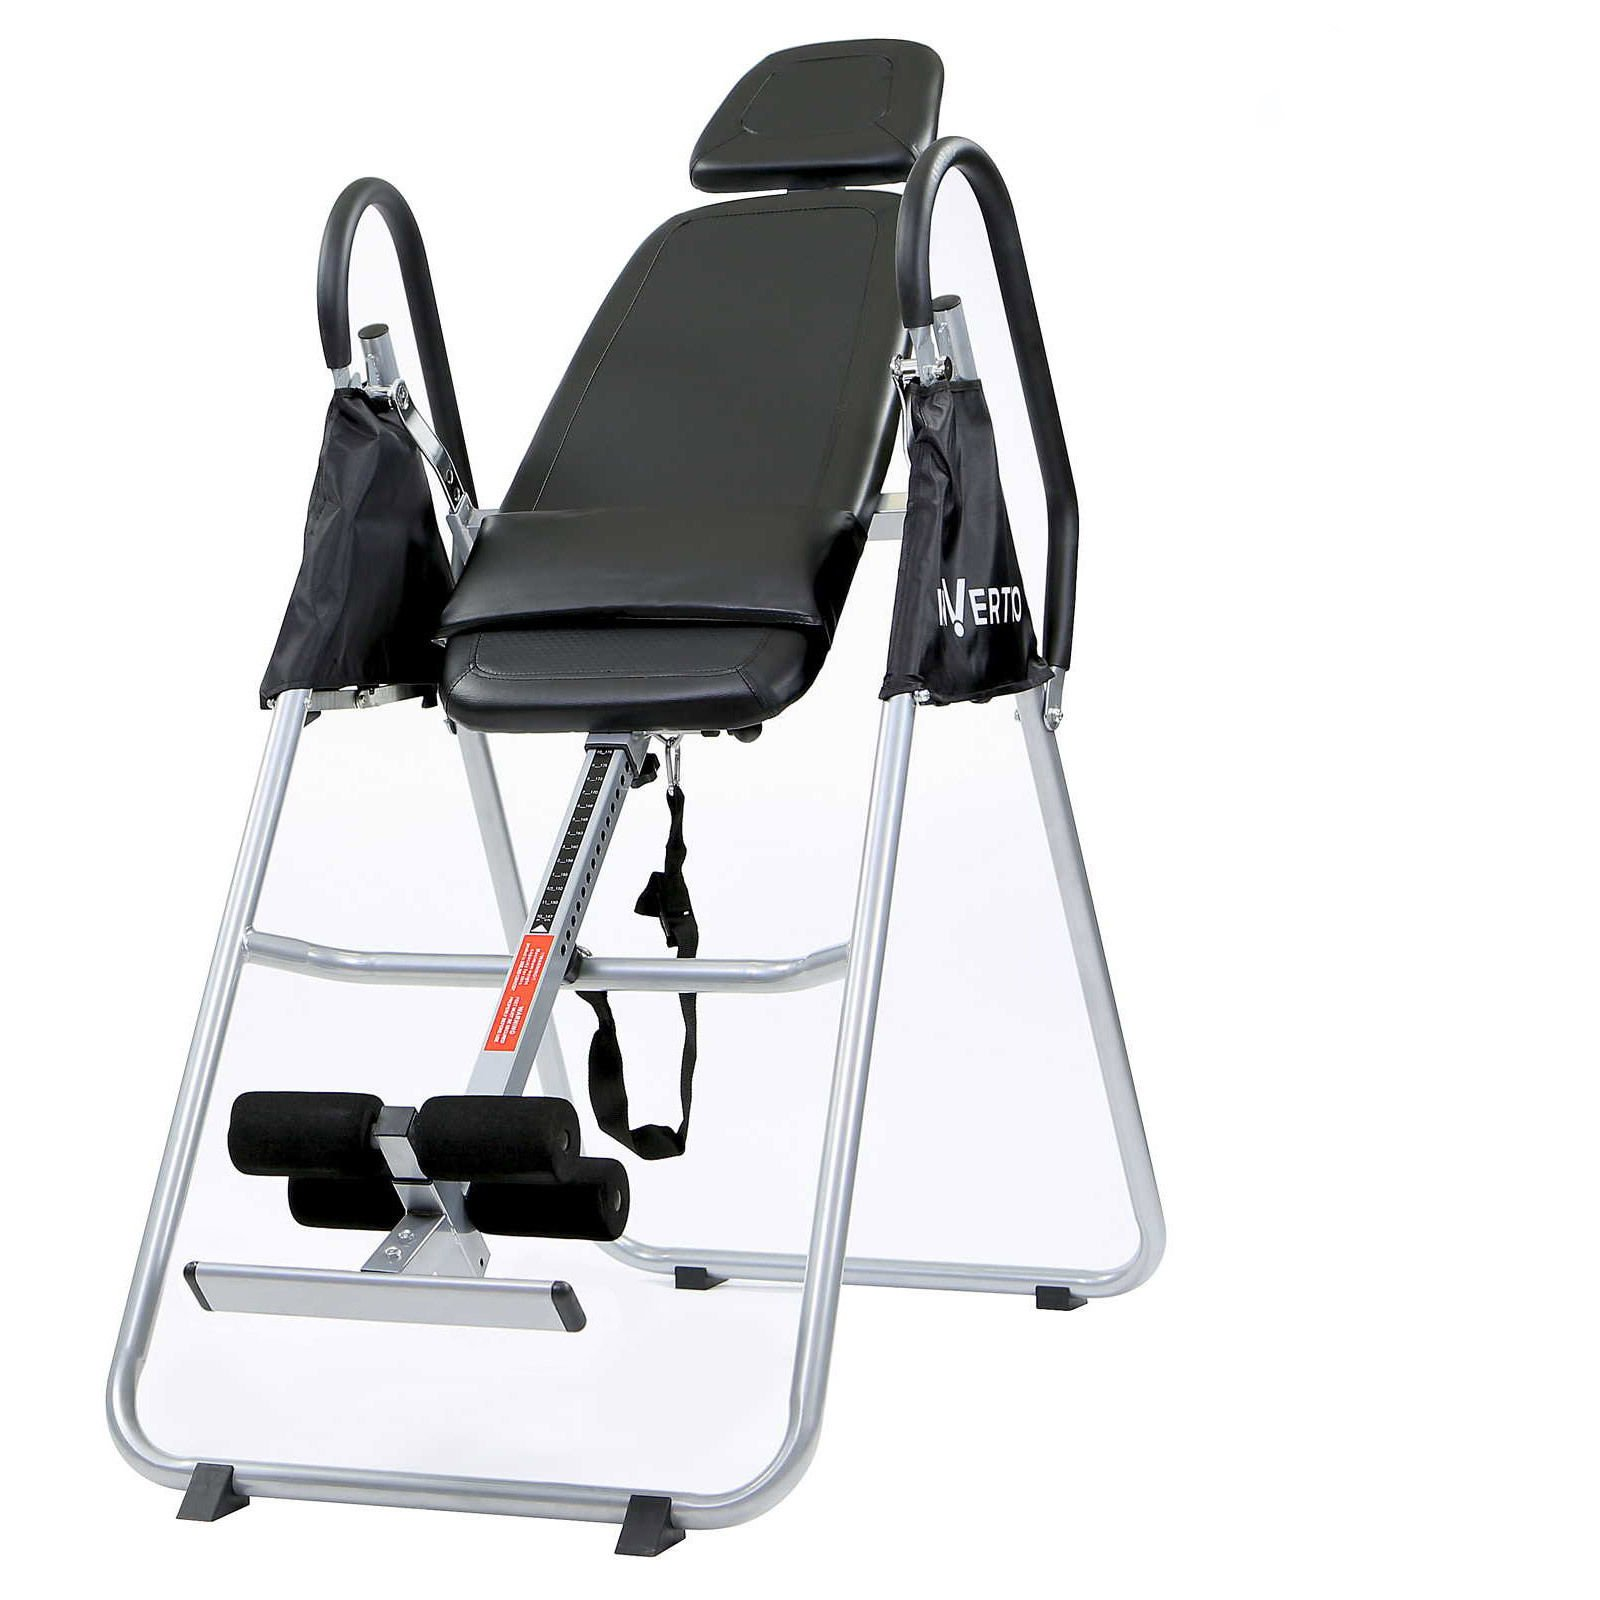 New Folding Inversion Table - Anti Gravity Back Fitness Therapy Relief